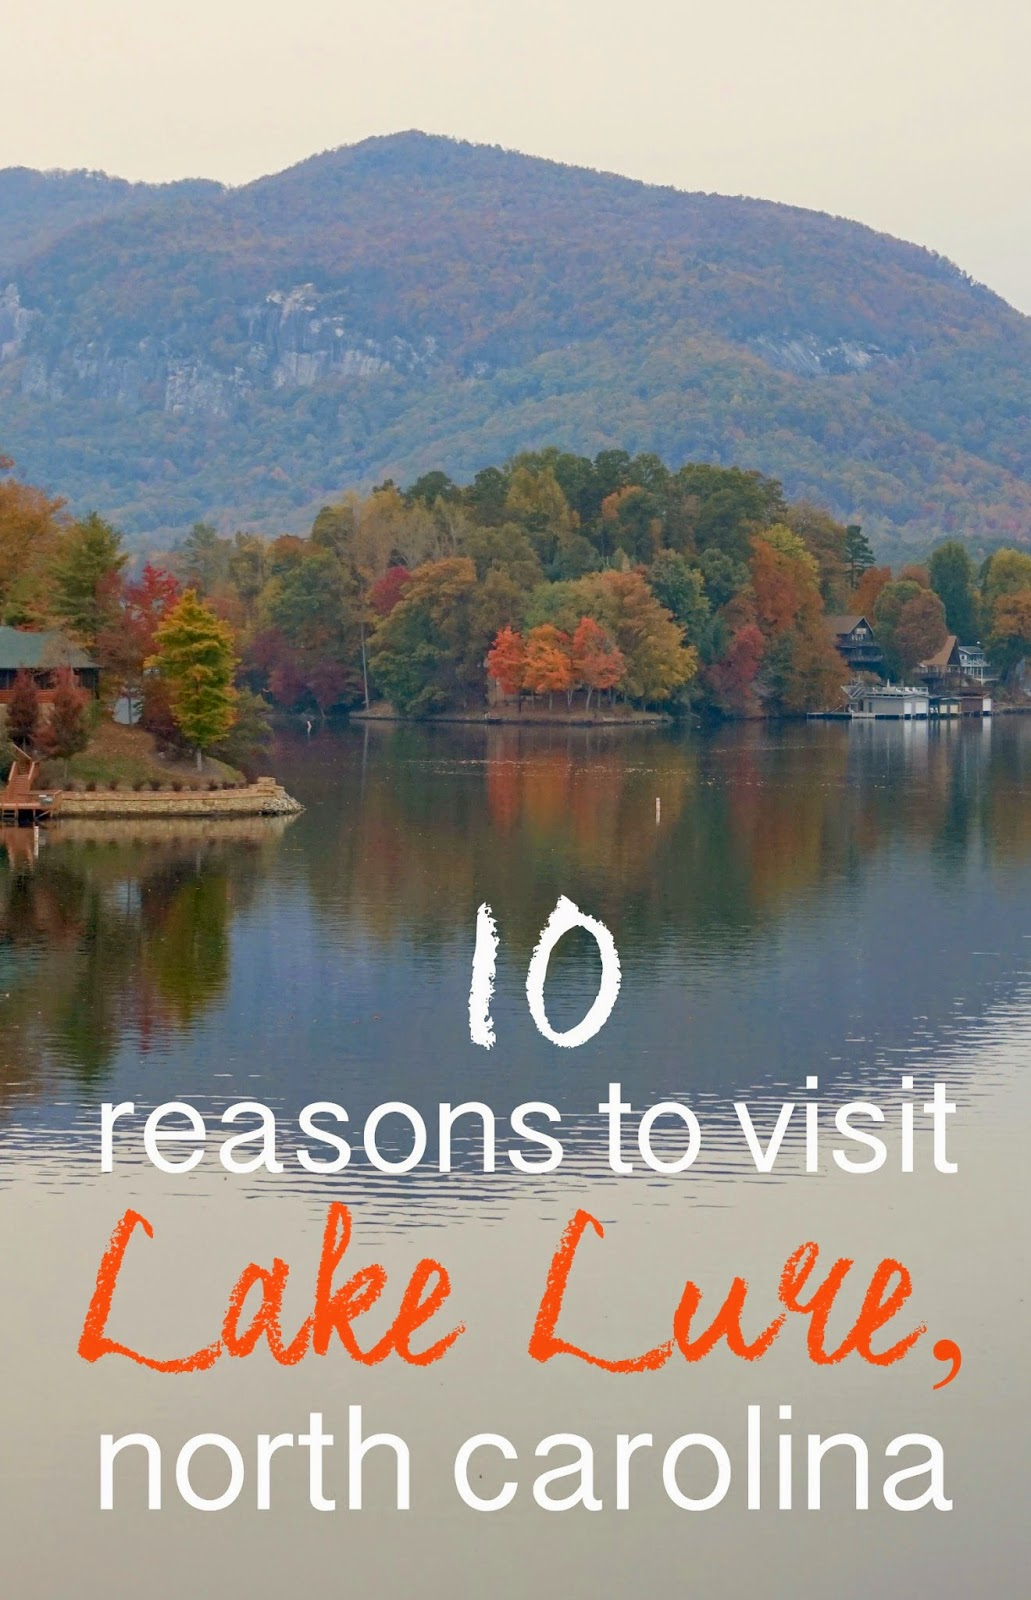 10 Kitchen And Home Decor Items Every 20 Something Needs: 10 Reasons To Visit Lake Lure, North Carolina